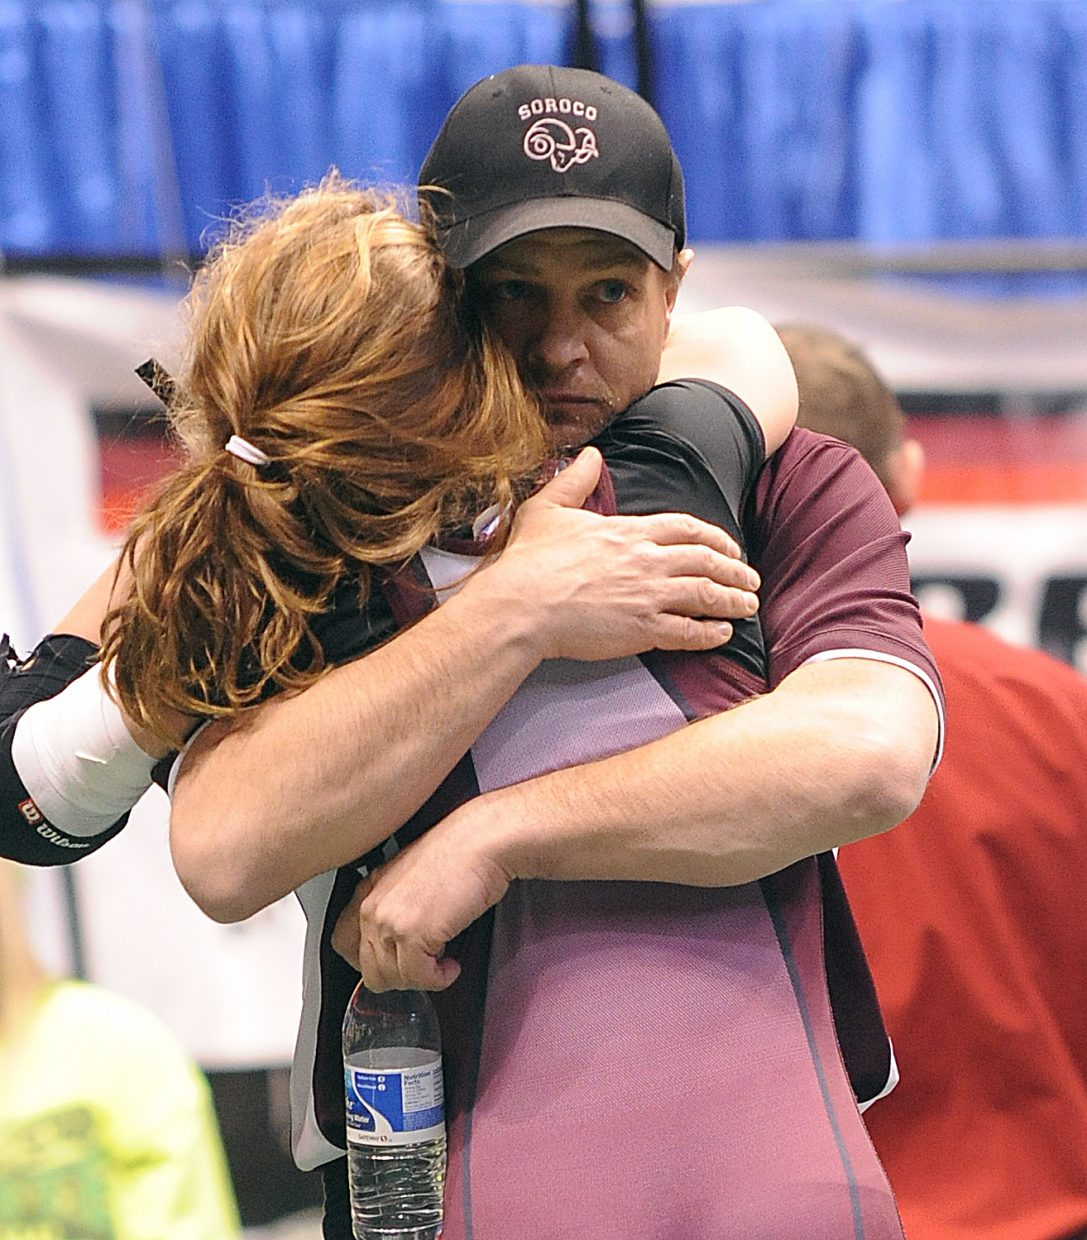 Lauryn Bruggink hugs her dad and coach, Travis Bruggink, after a loss Saturday in the consolation quarterfinals of the 103-pound bracket at the state wrestling tournament in Denver.